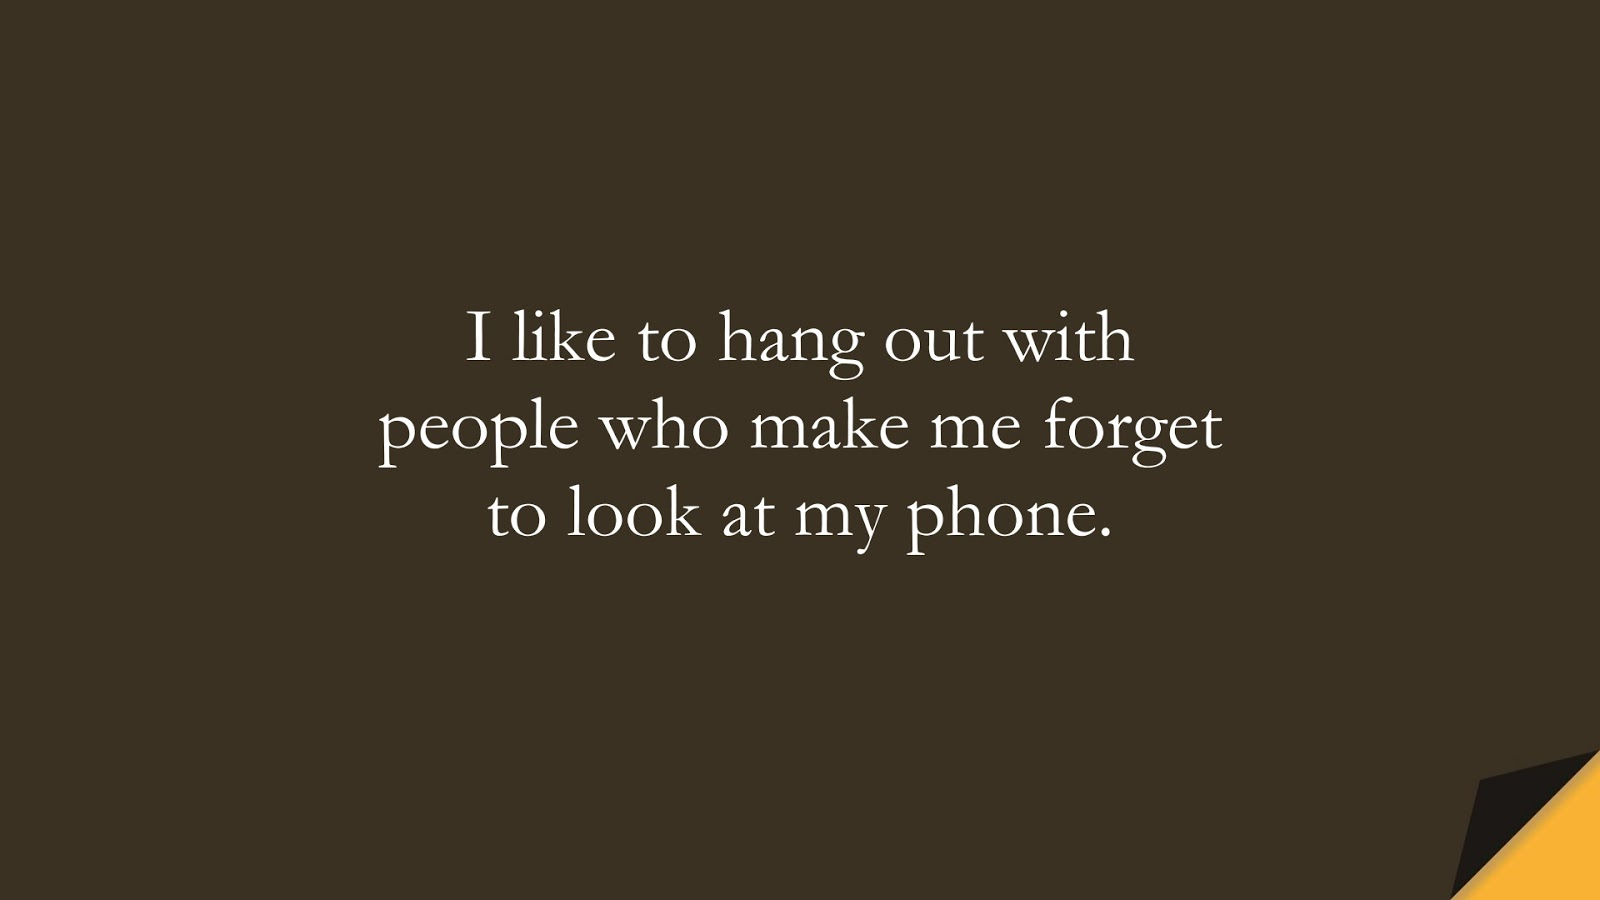 I like to hang out with people who make me forget to look at my phone.FALSE